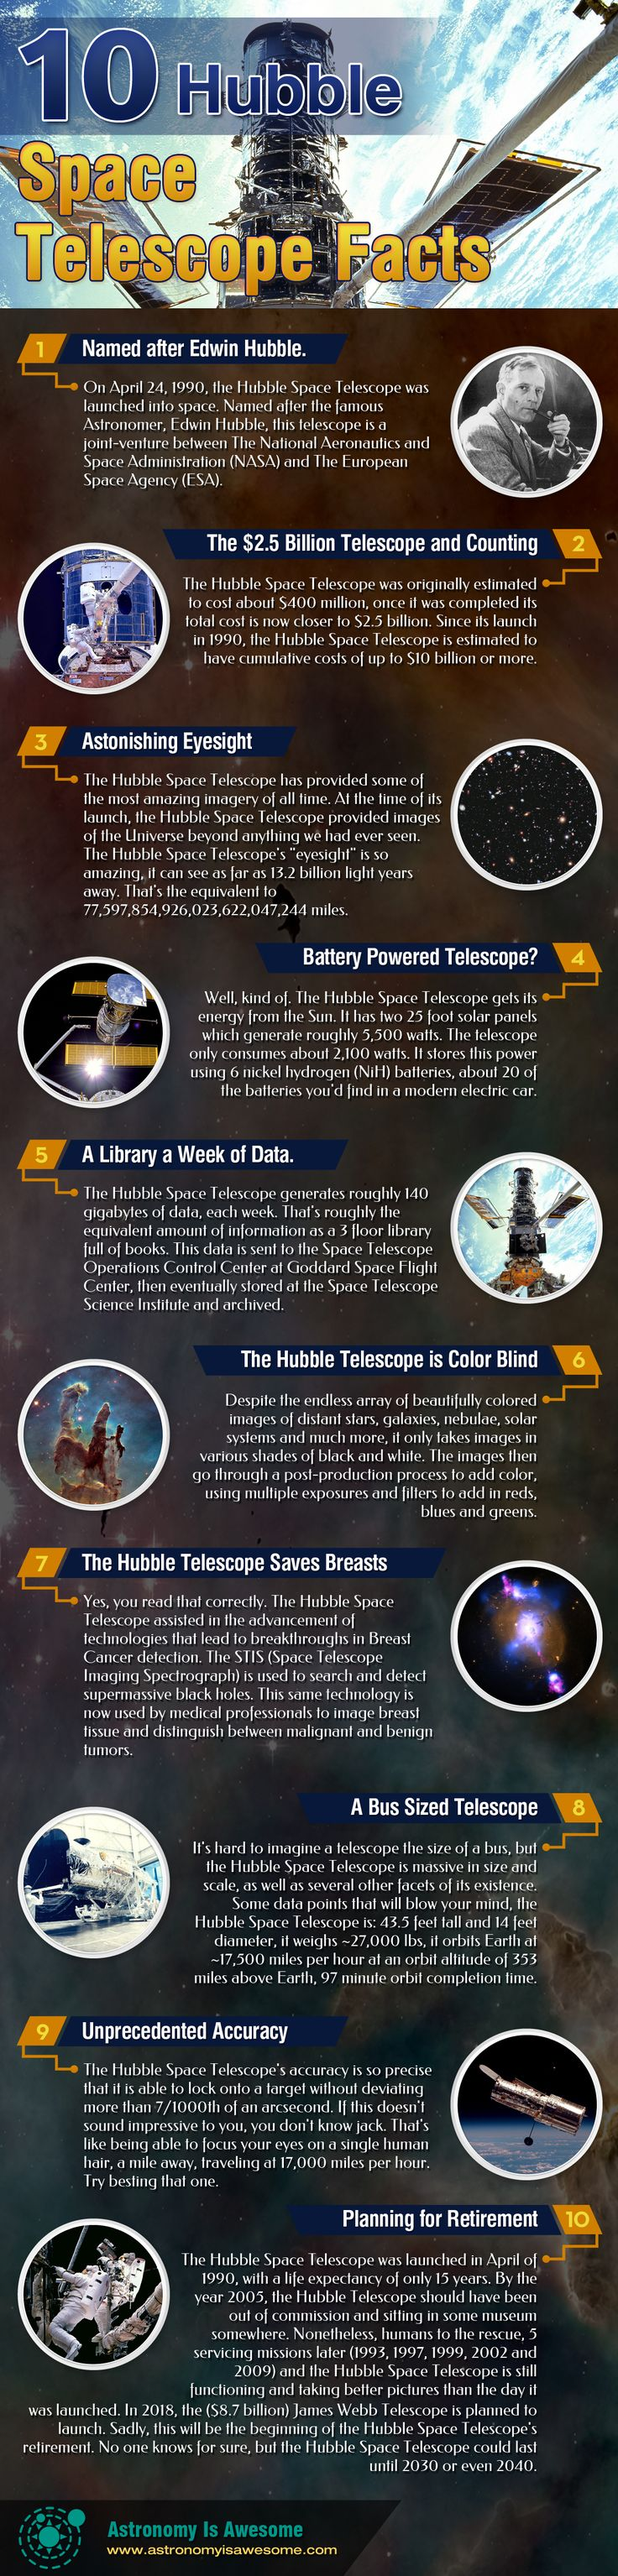 10 Hubble Space Telescope Facts | Astronomy Is Awesome